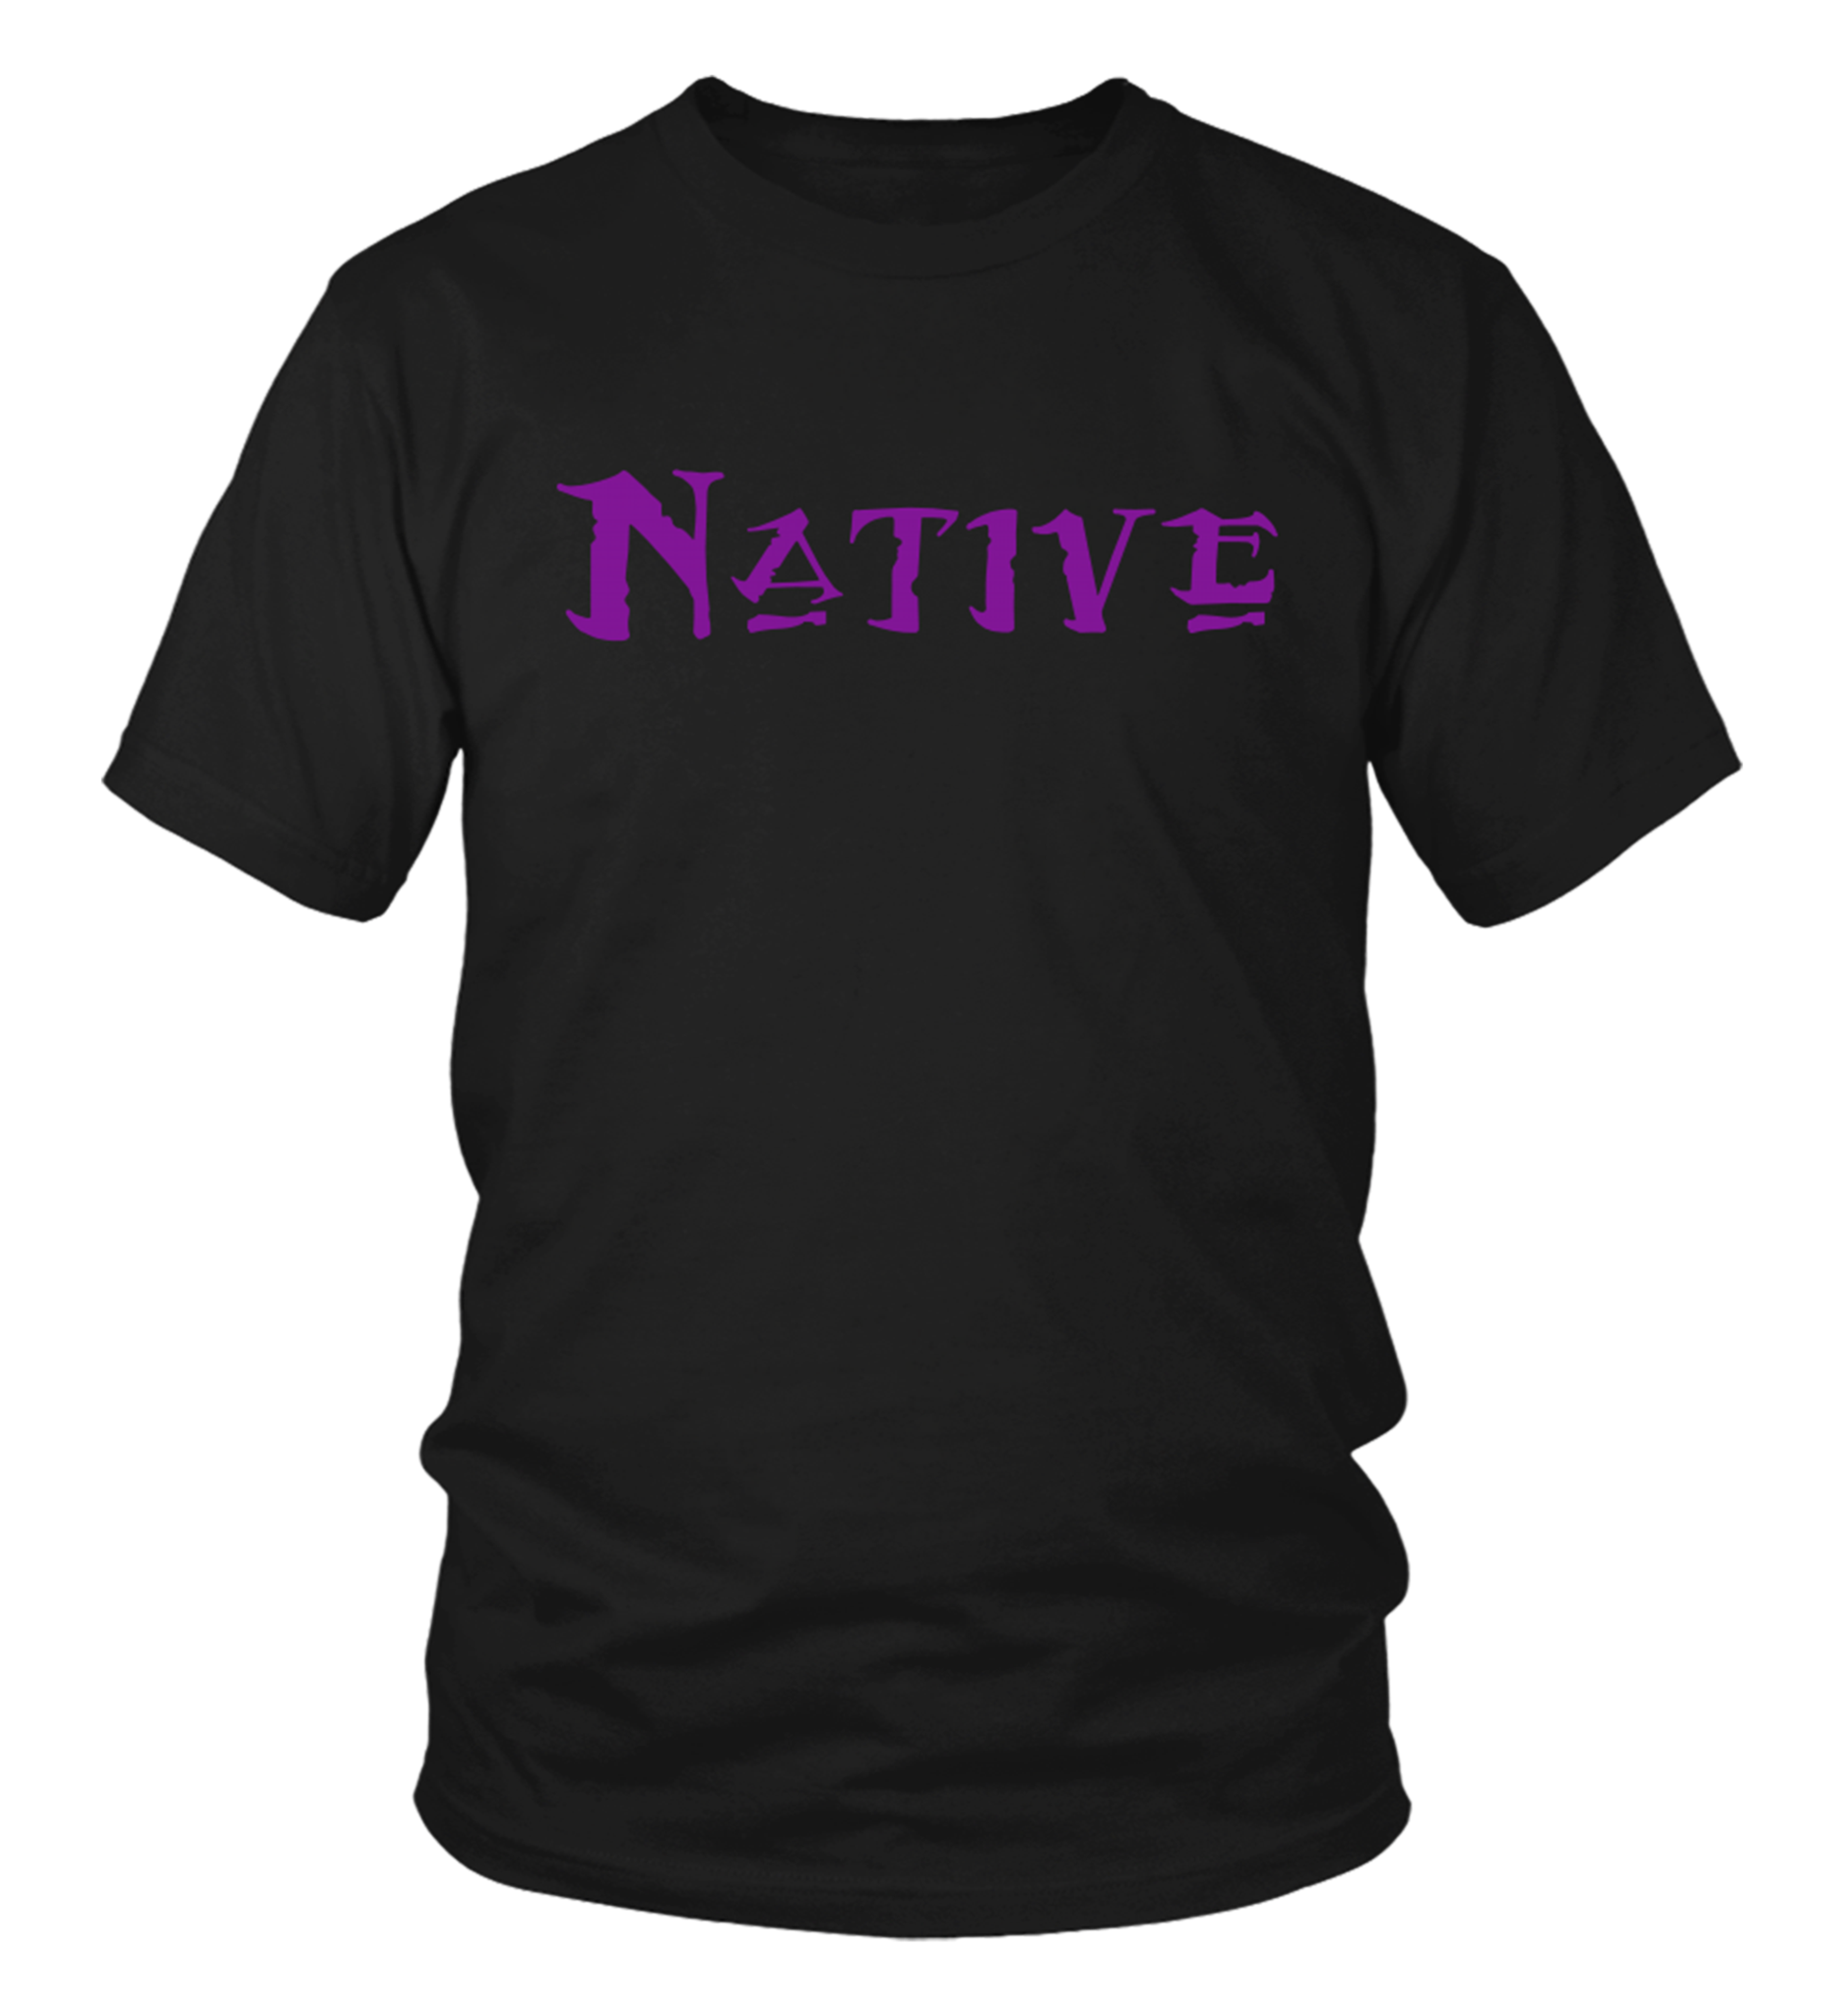 Native Purple T-Shirt